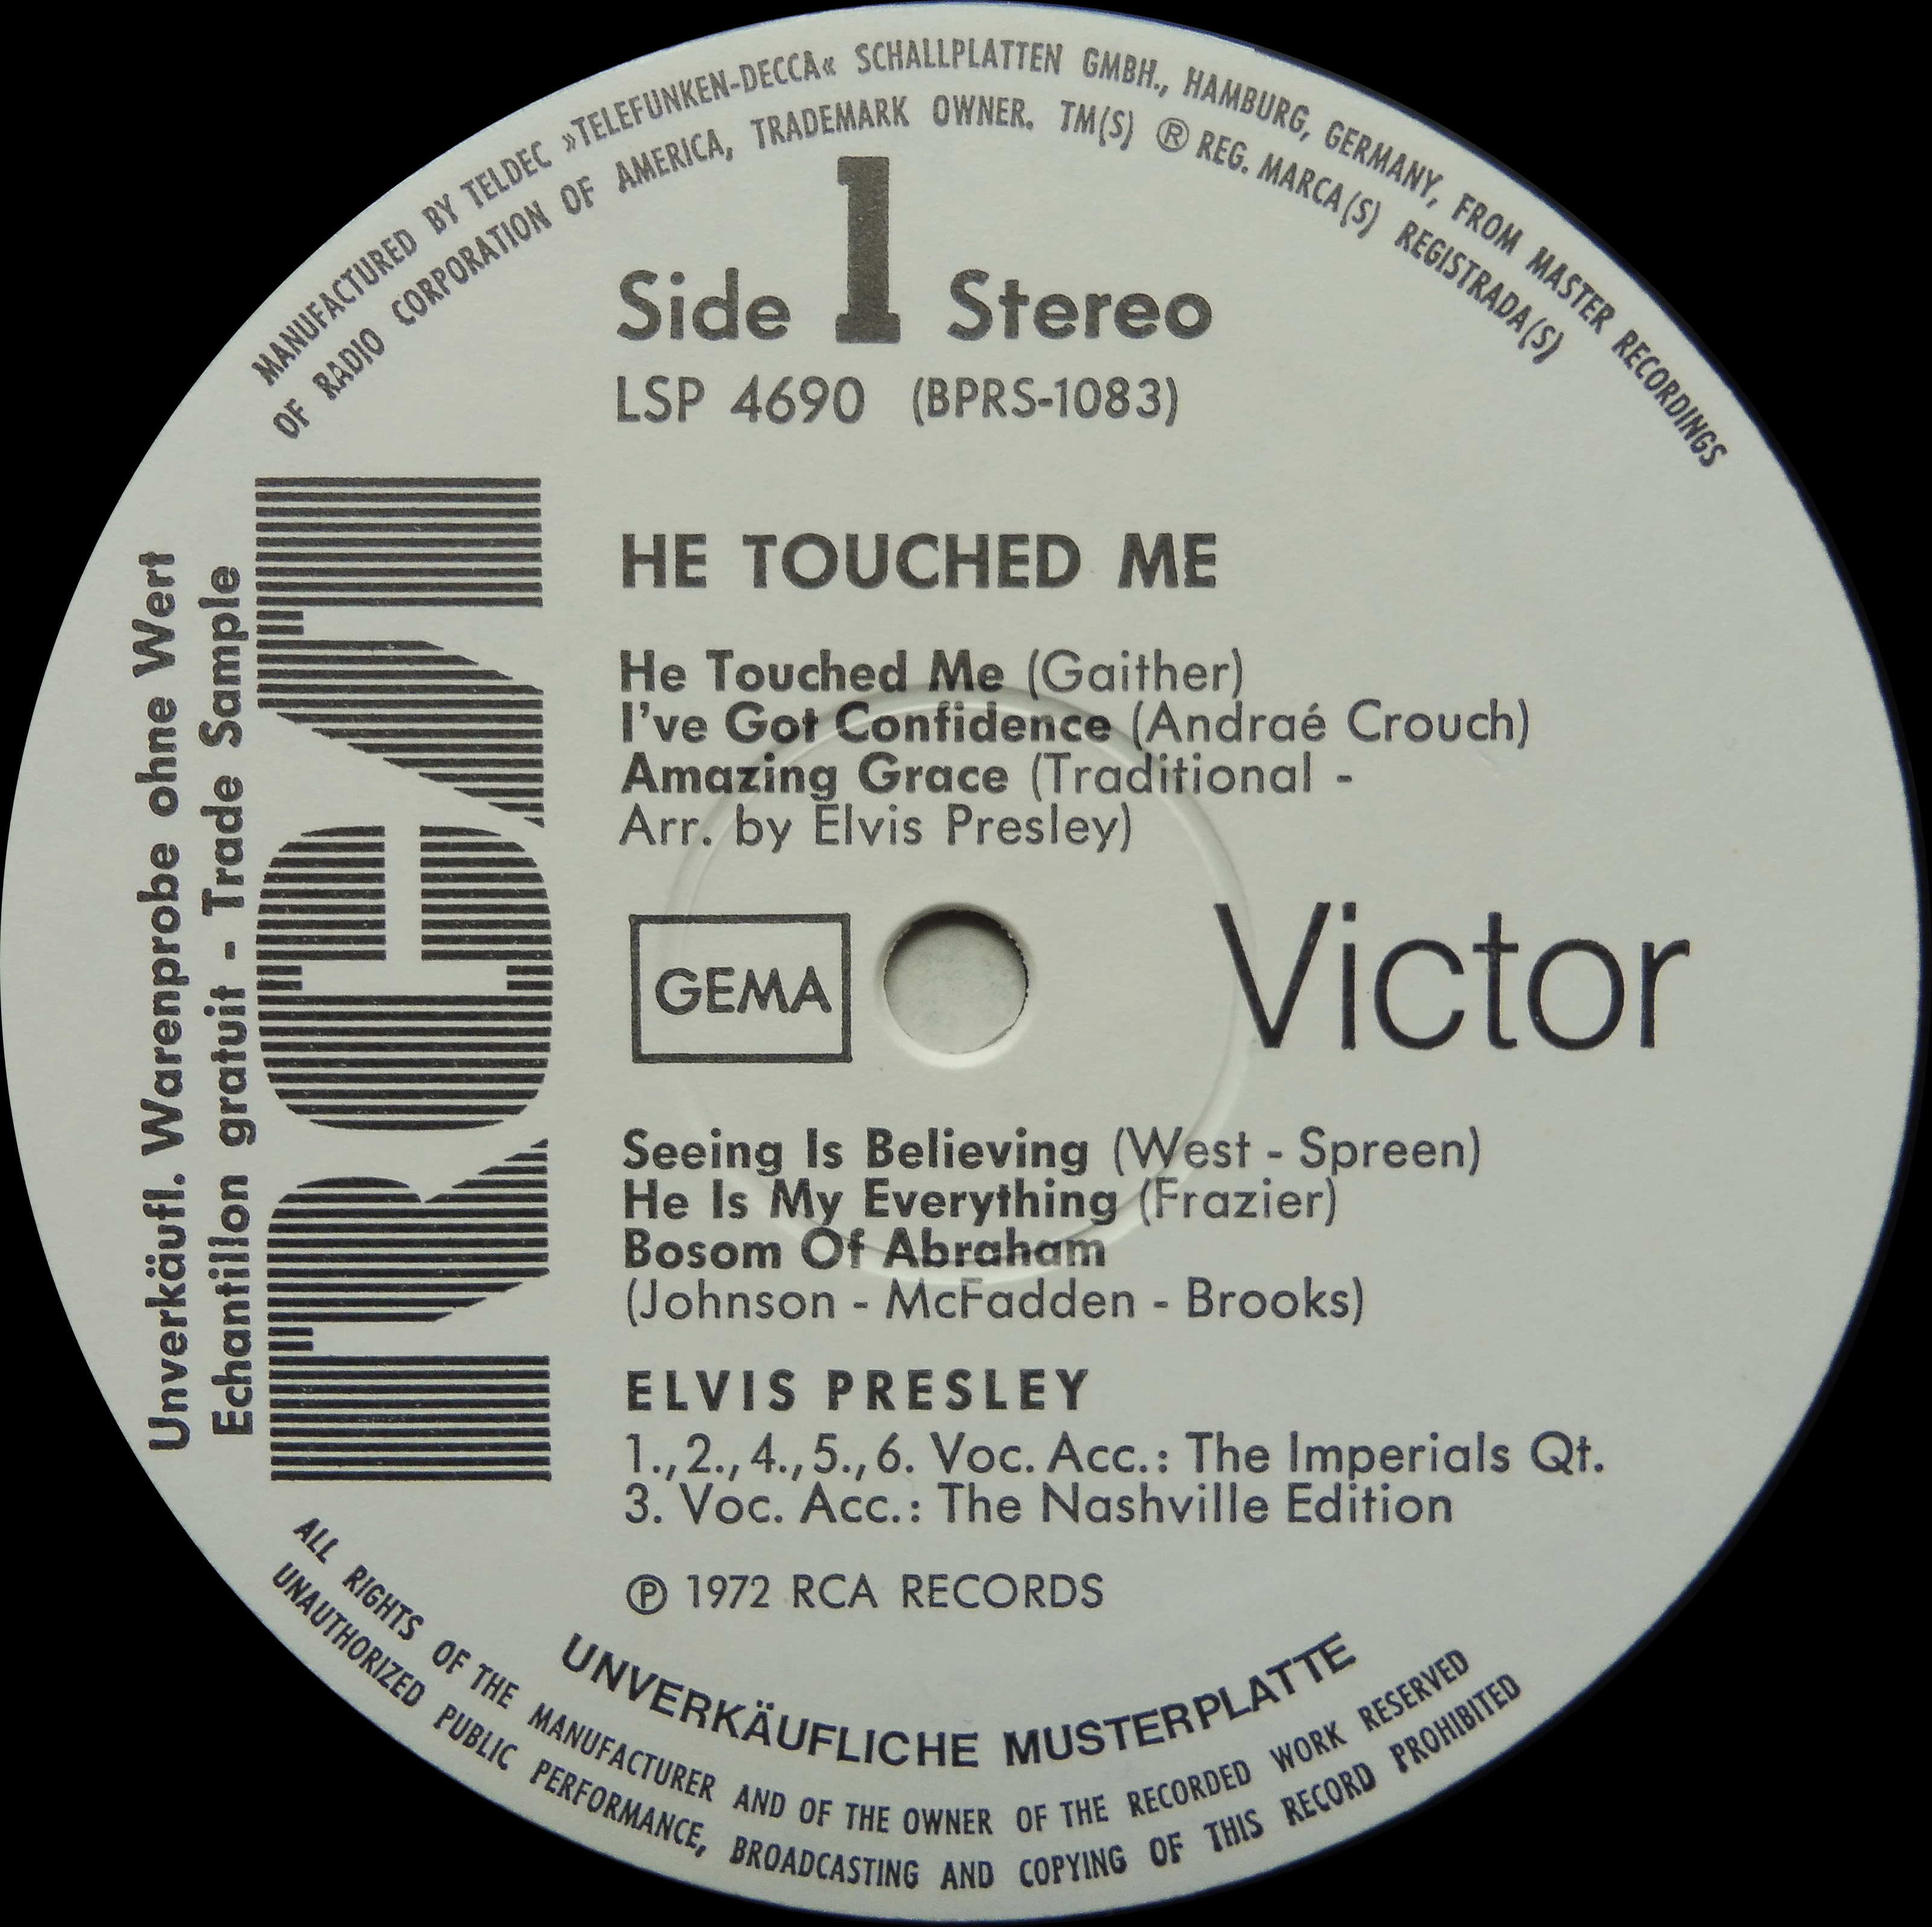 HE TOUCHED ME Hetouchedme72promo_sidrj00